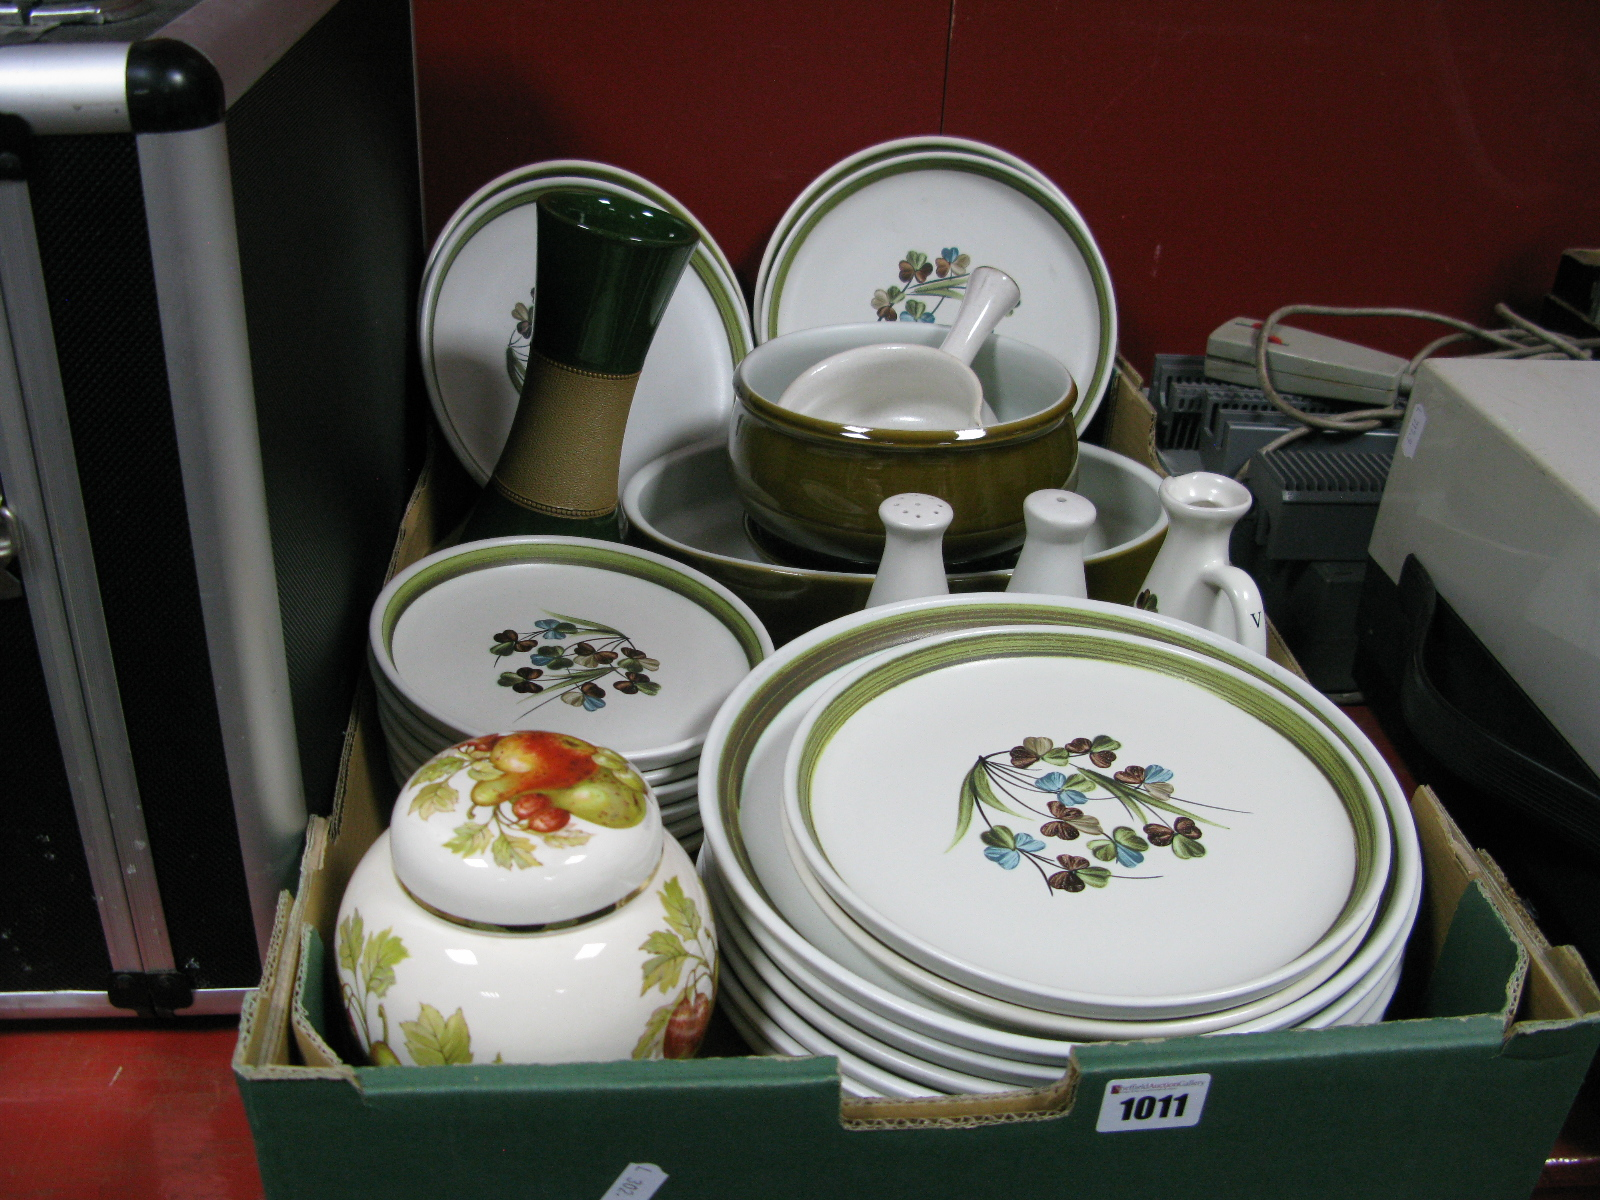 Lot 1011 - Denby Stoneware Floral Tableware of Twenty Six pieces, Masons ginger jar, etc:- One Box